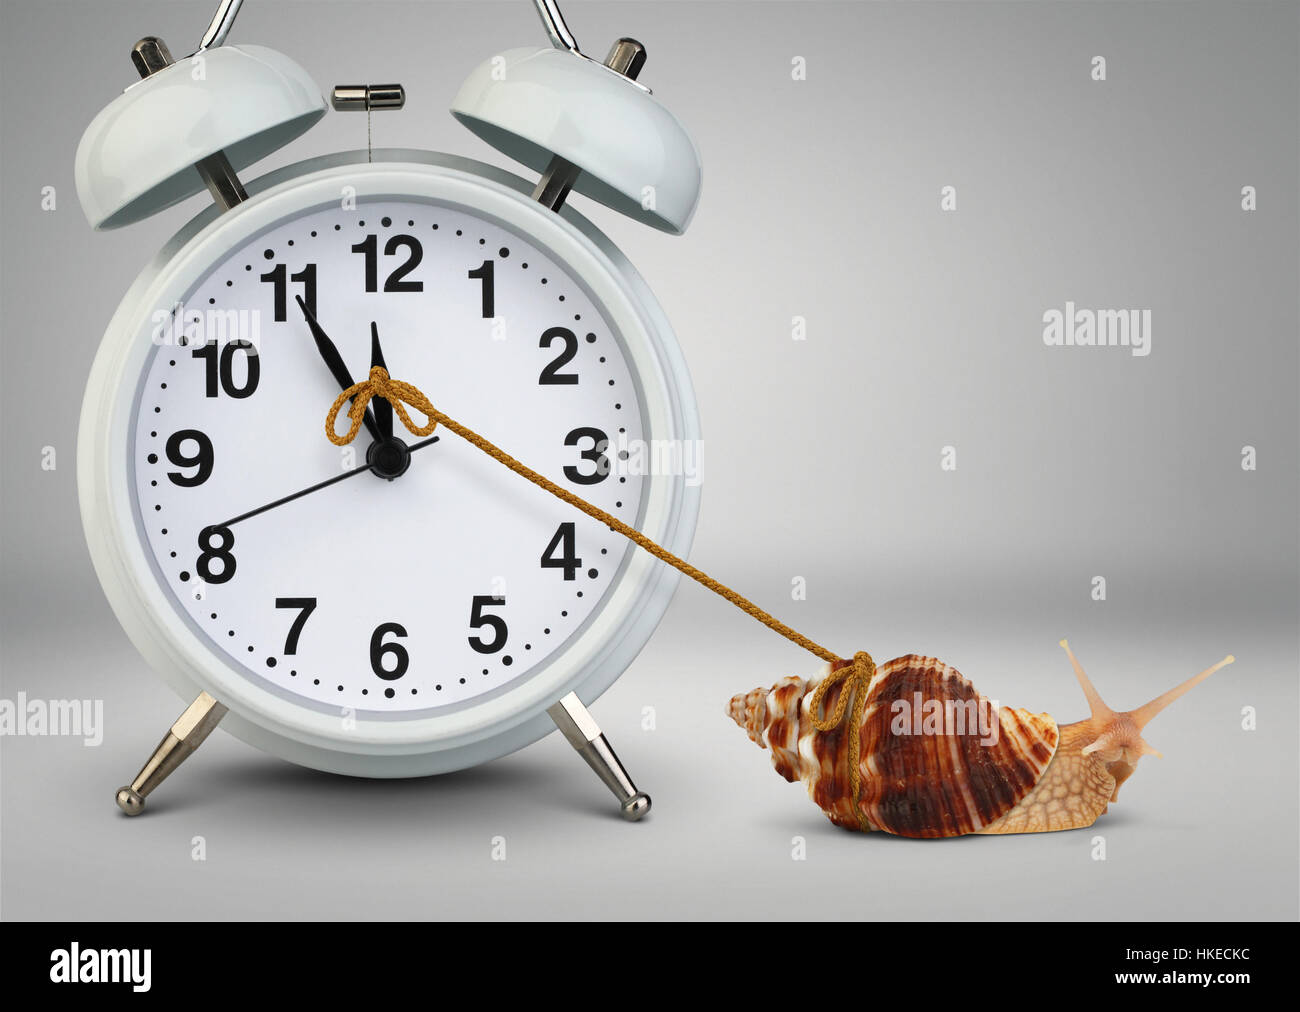 Snail pulling clock, time management concept - Stock Image